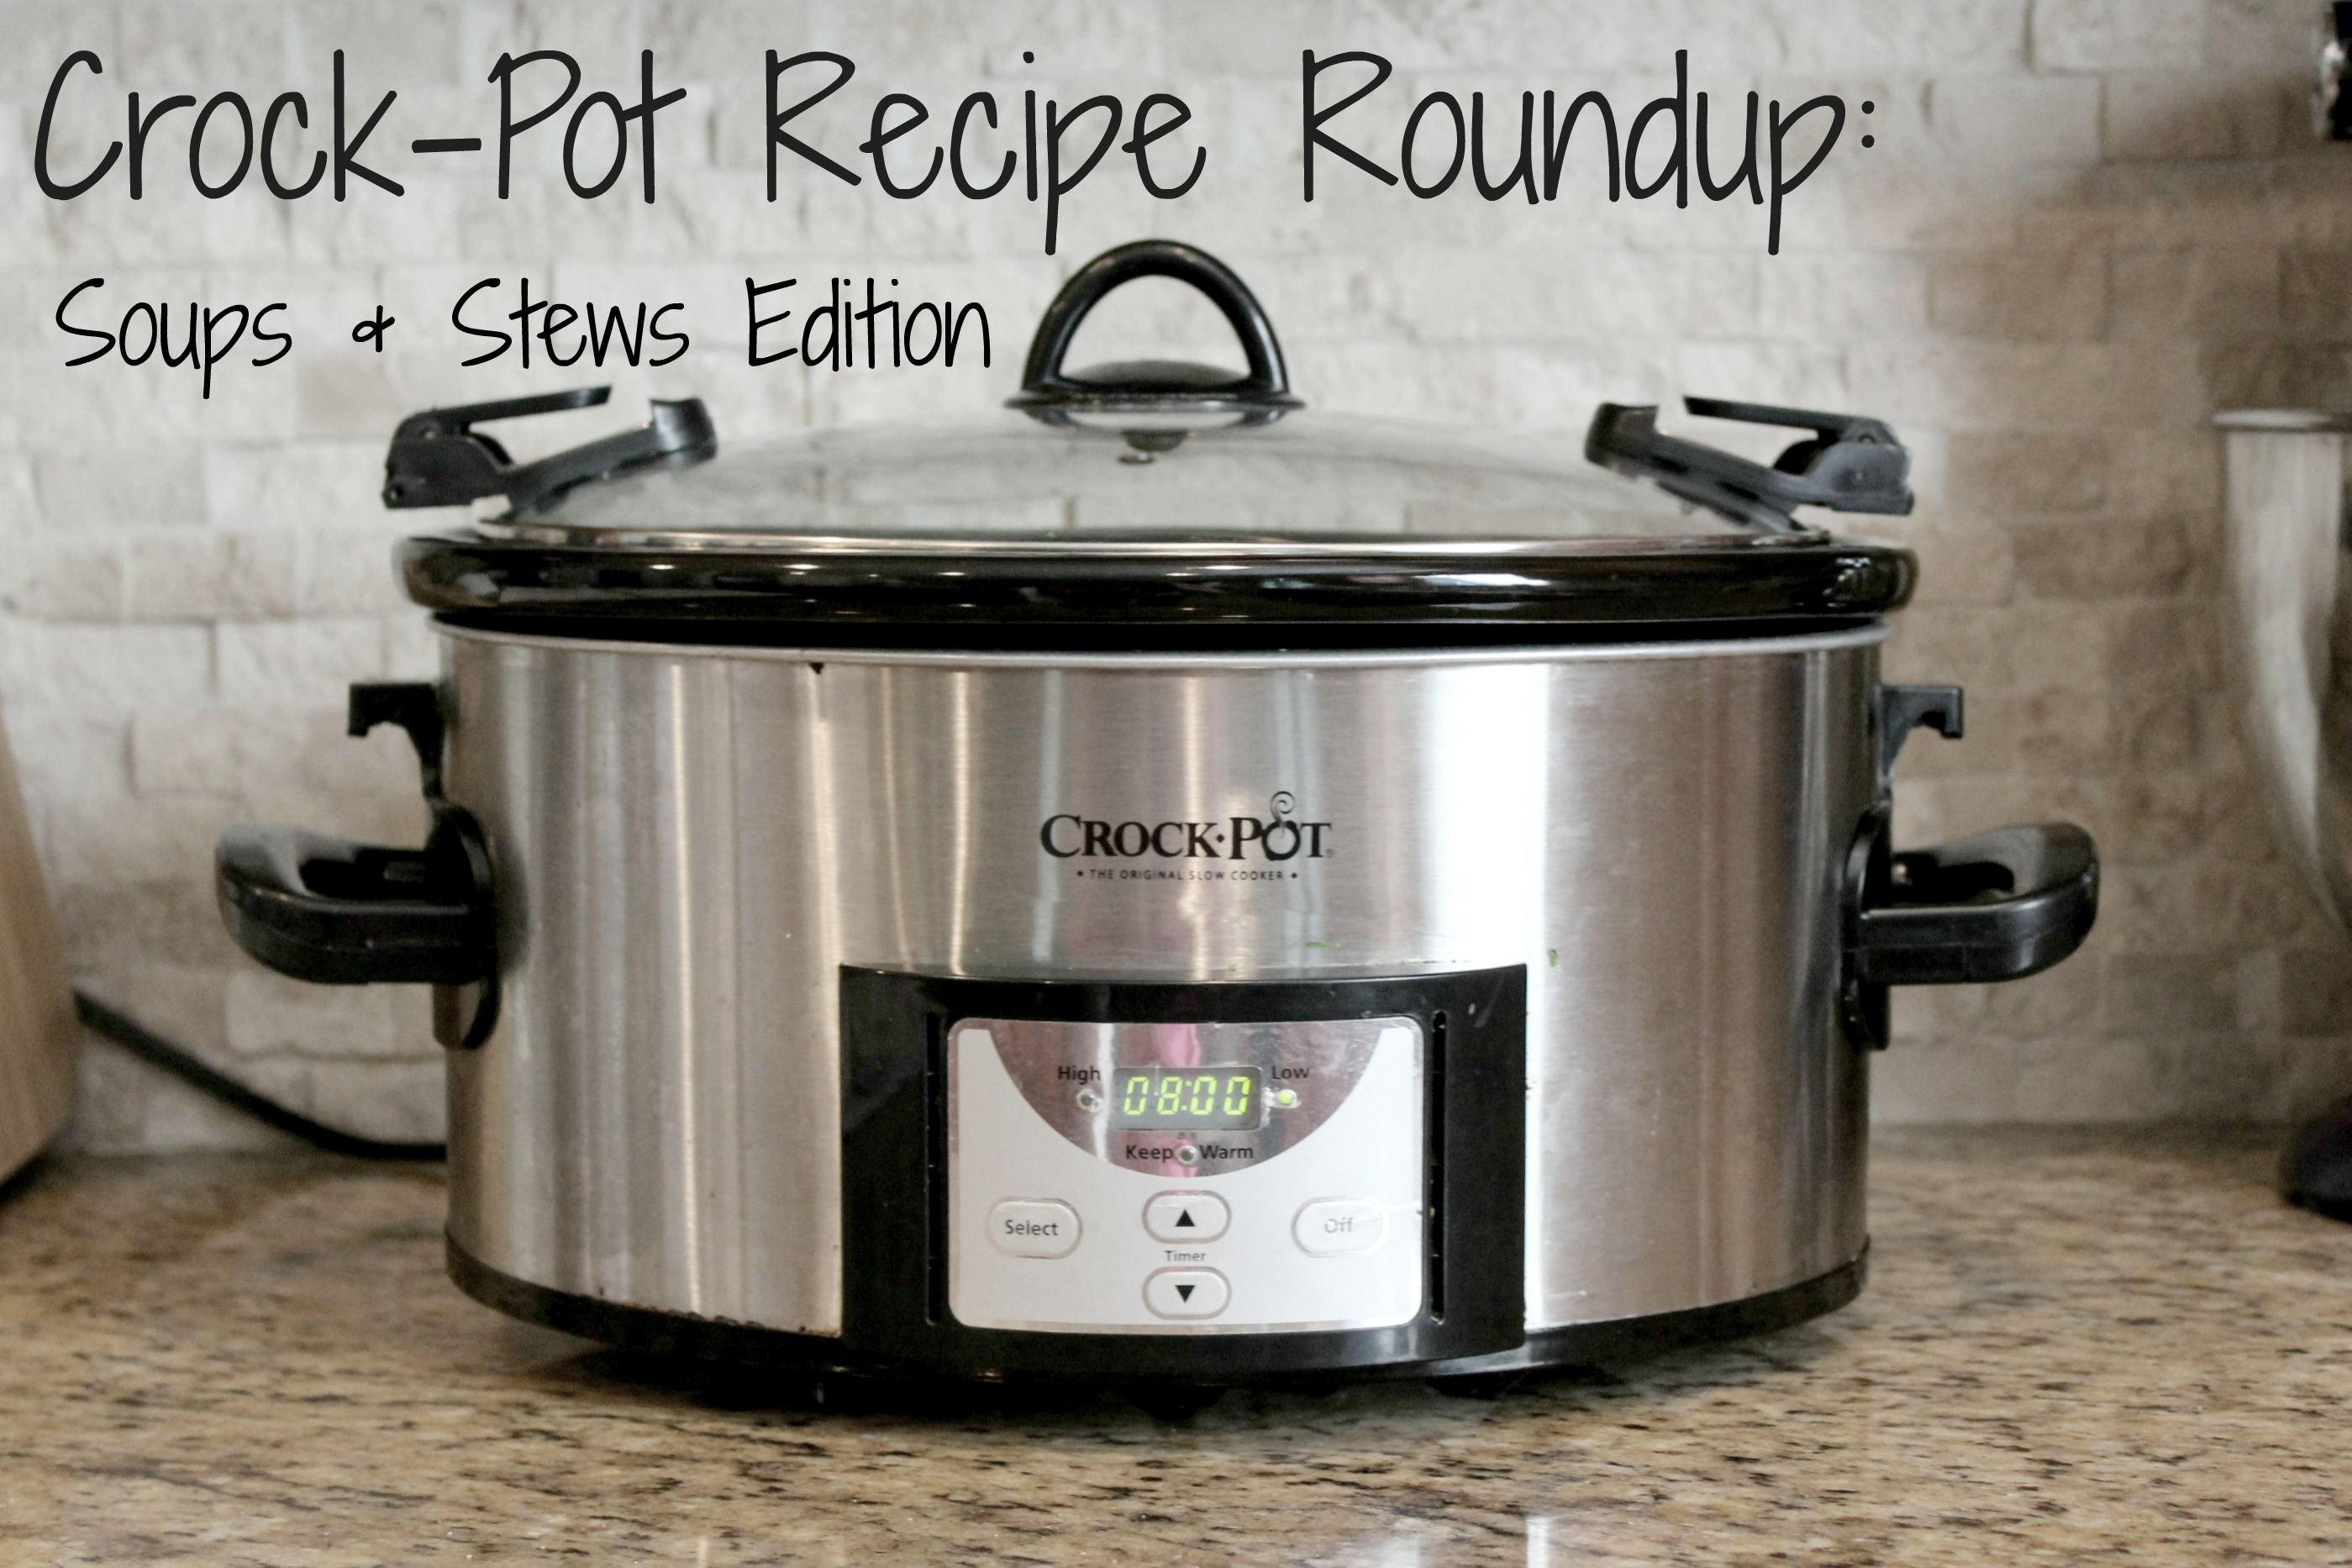 CrockPot Recipe Roundup: Soups and Stews Edition